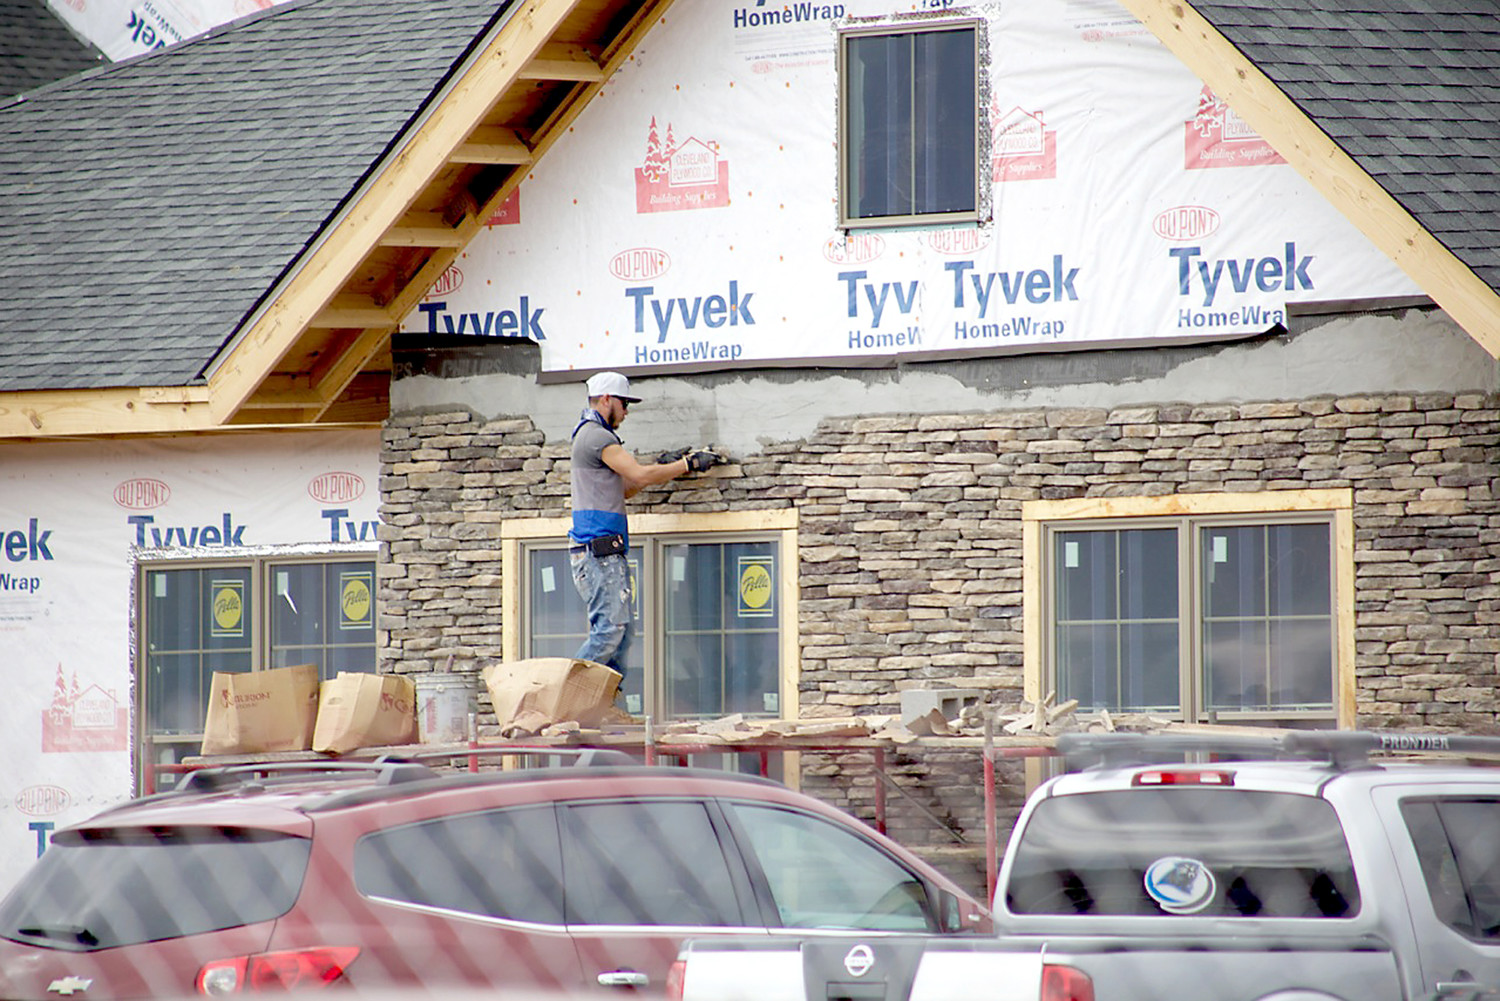 CONSTRUCTION OF THE new Legacy Village treatment and care facility on Candies Lane is progressing. A workman for Tri-Con Construction is shown placing stone on the side of one of the apartment units.